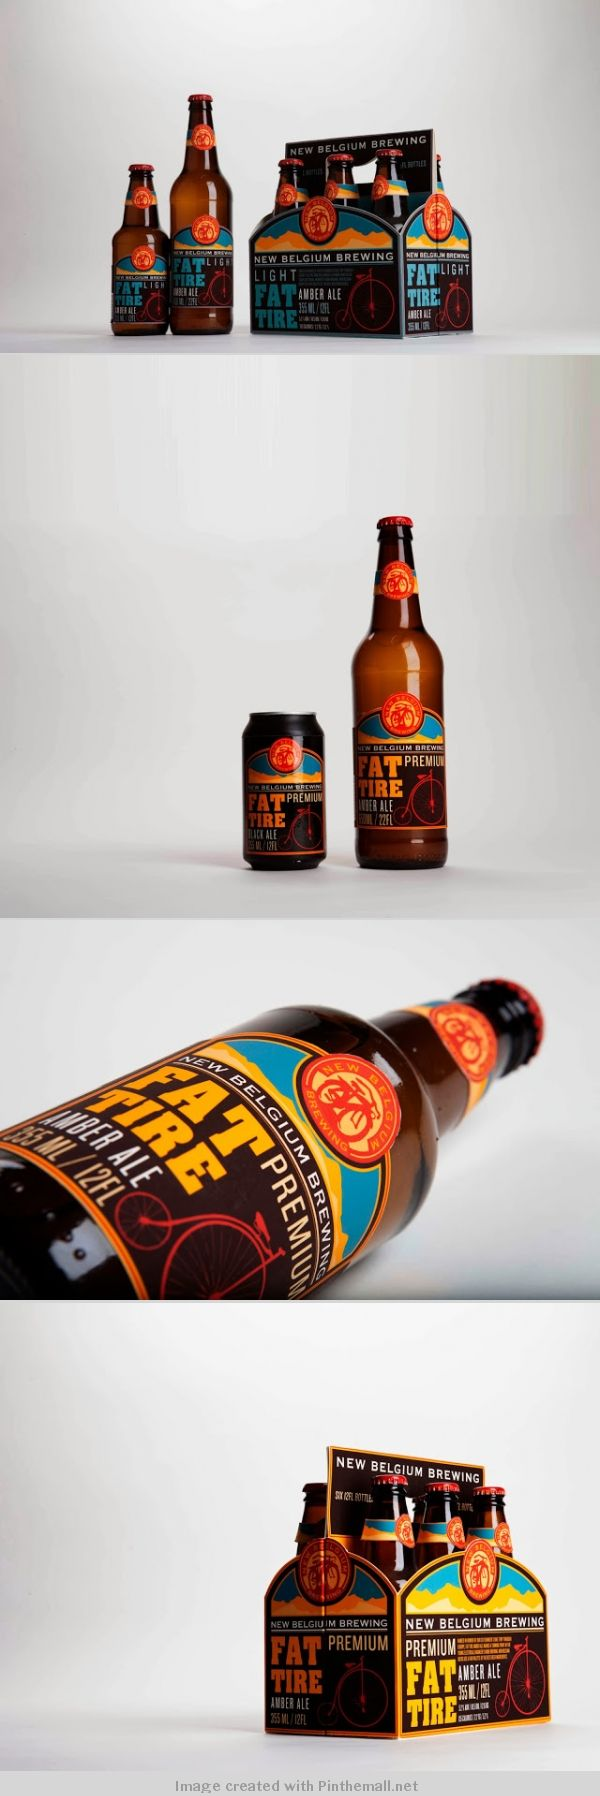 Fat Tire Beer Redesigned (Student Project)